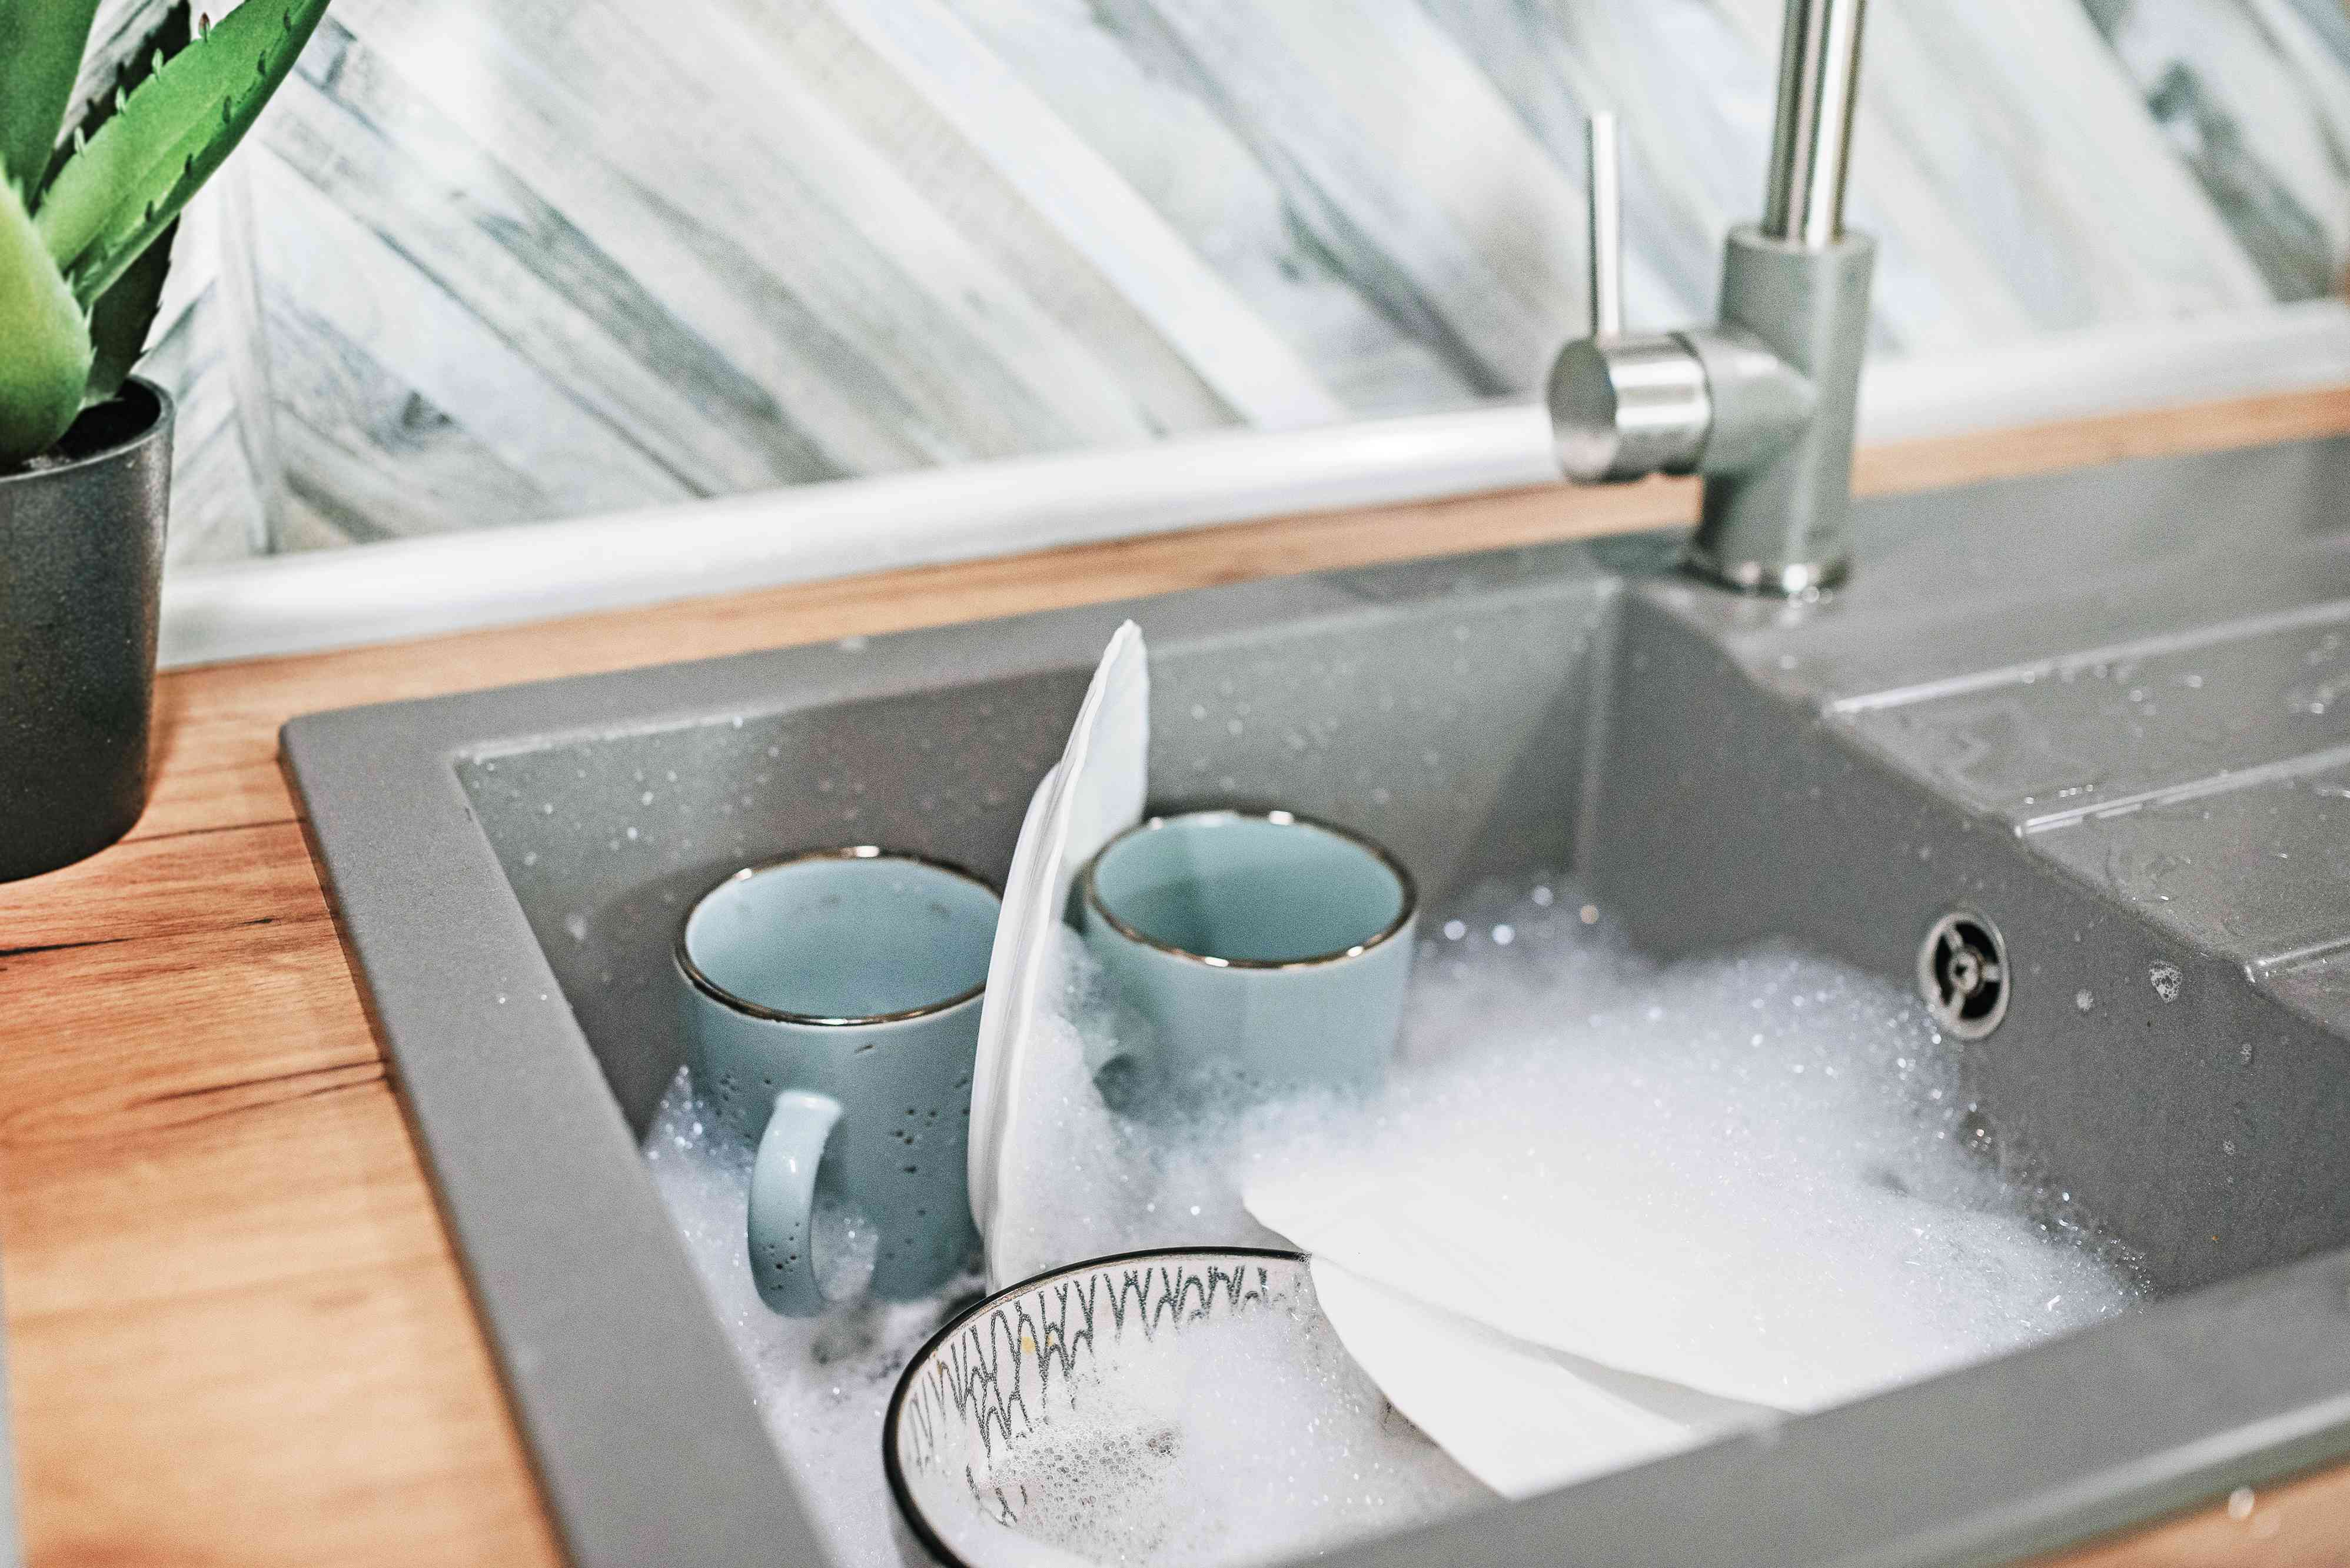 Dishes soaked in kitchen sink with soapy water